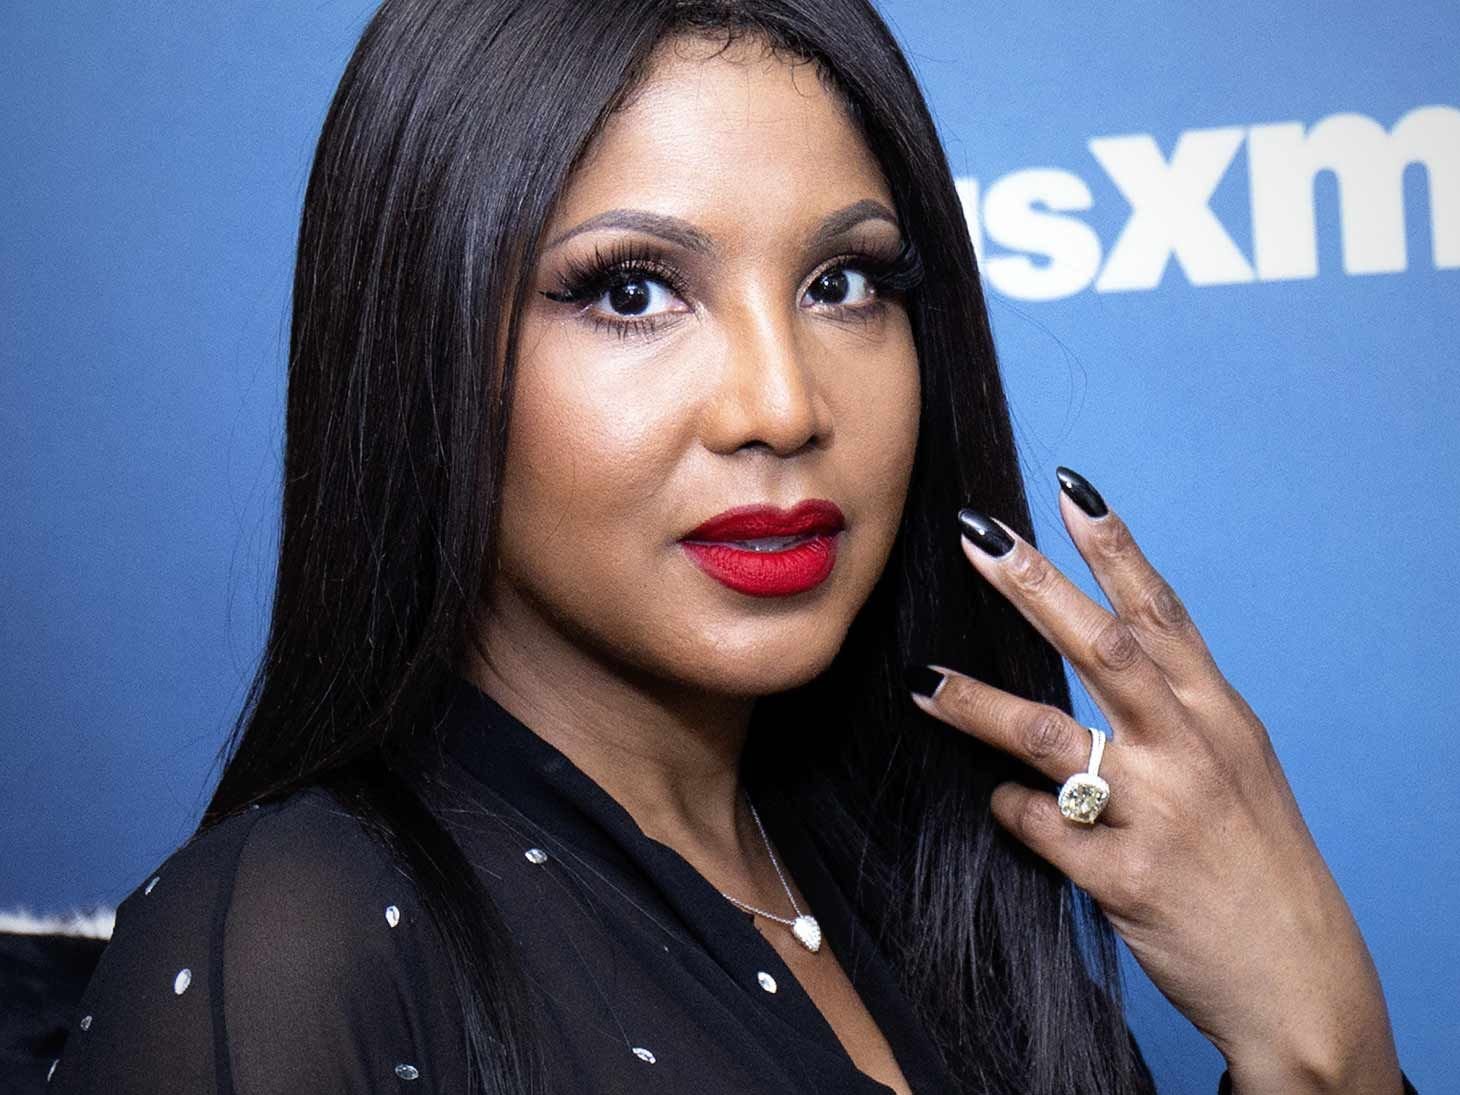 Toni Braxton Proudly Flaunts Her Beach Body – Check Out Her Flawless Figure Here!